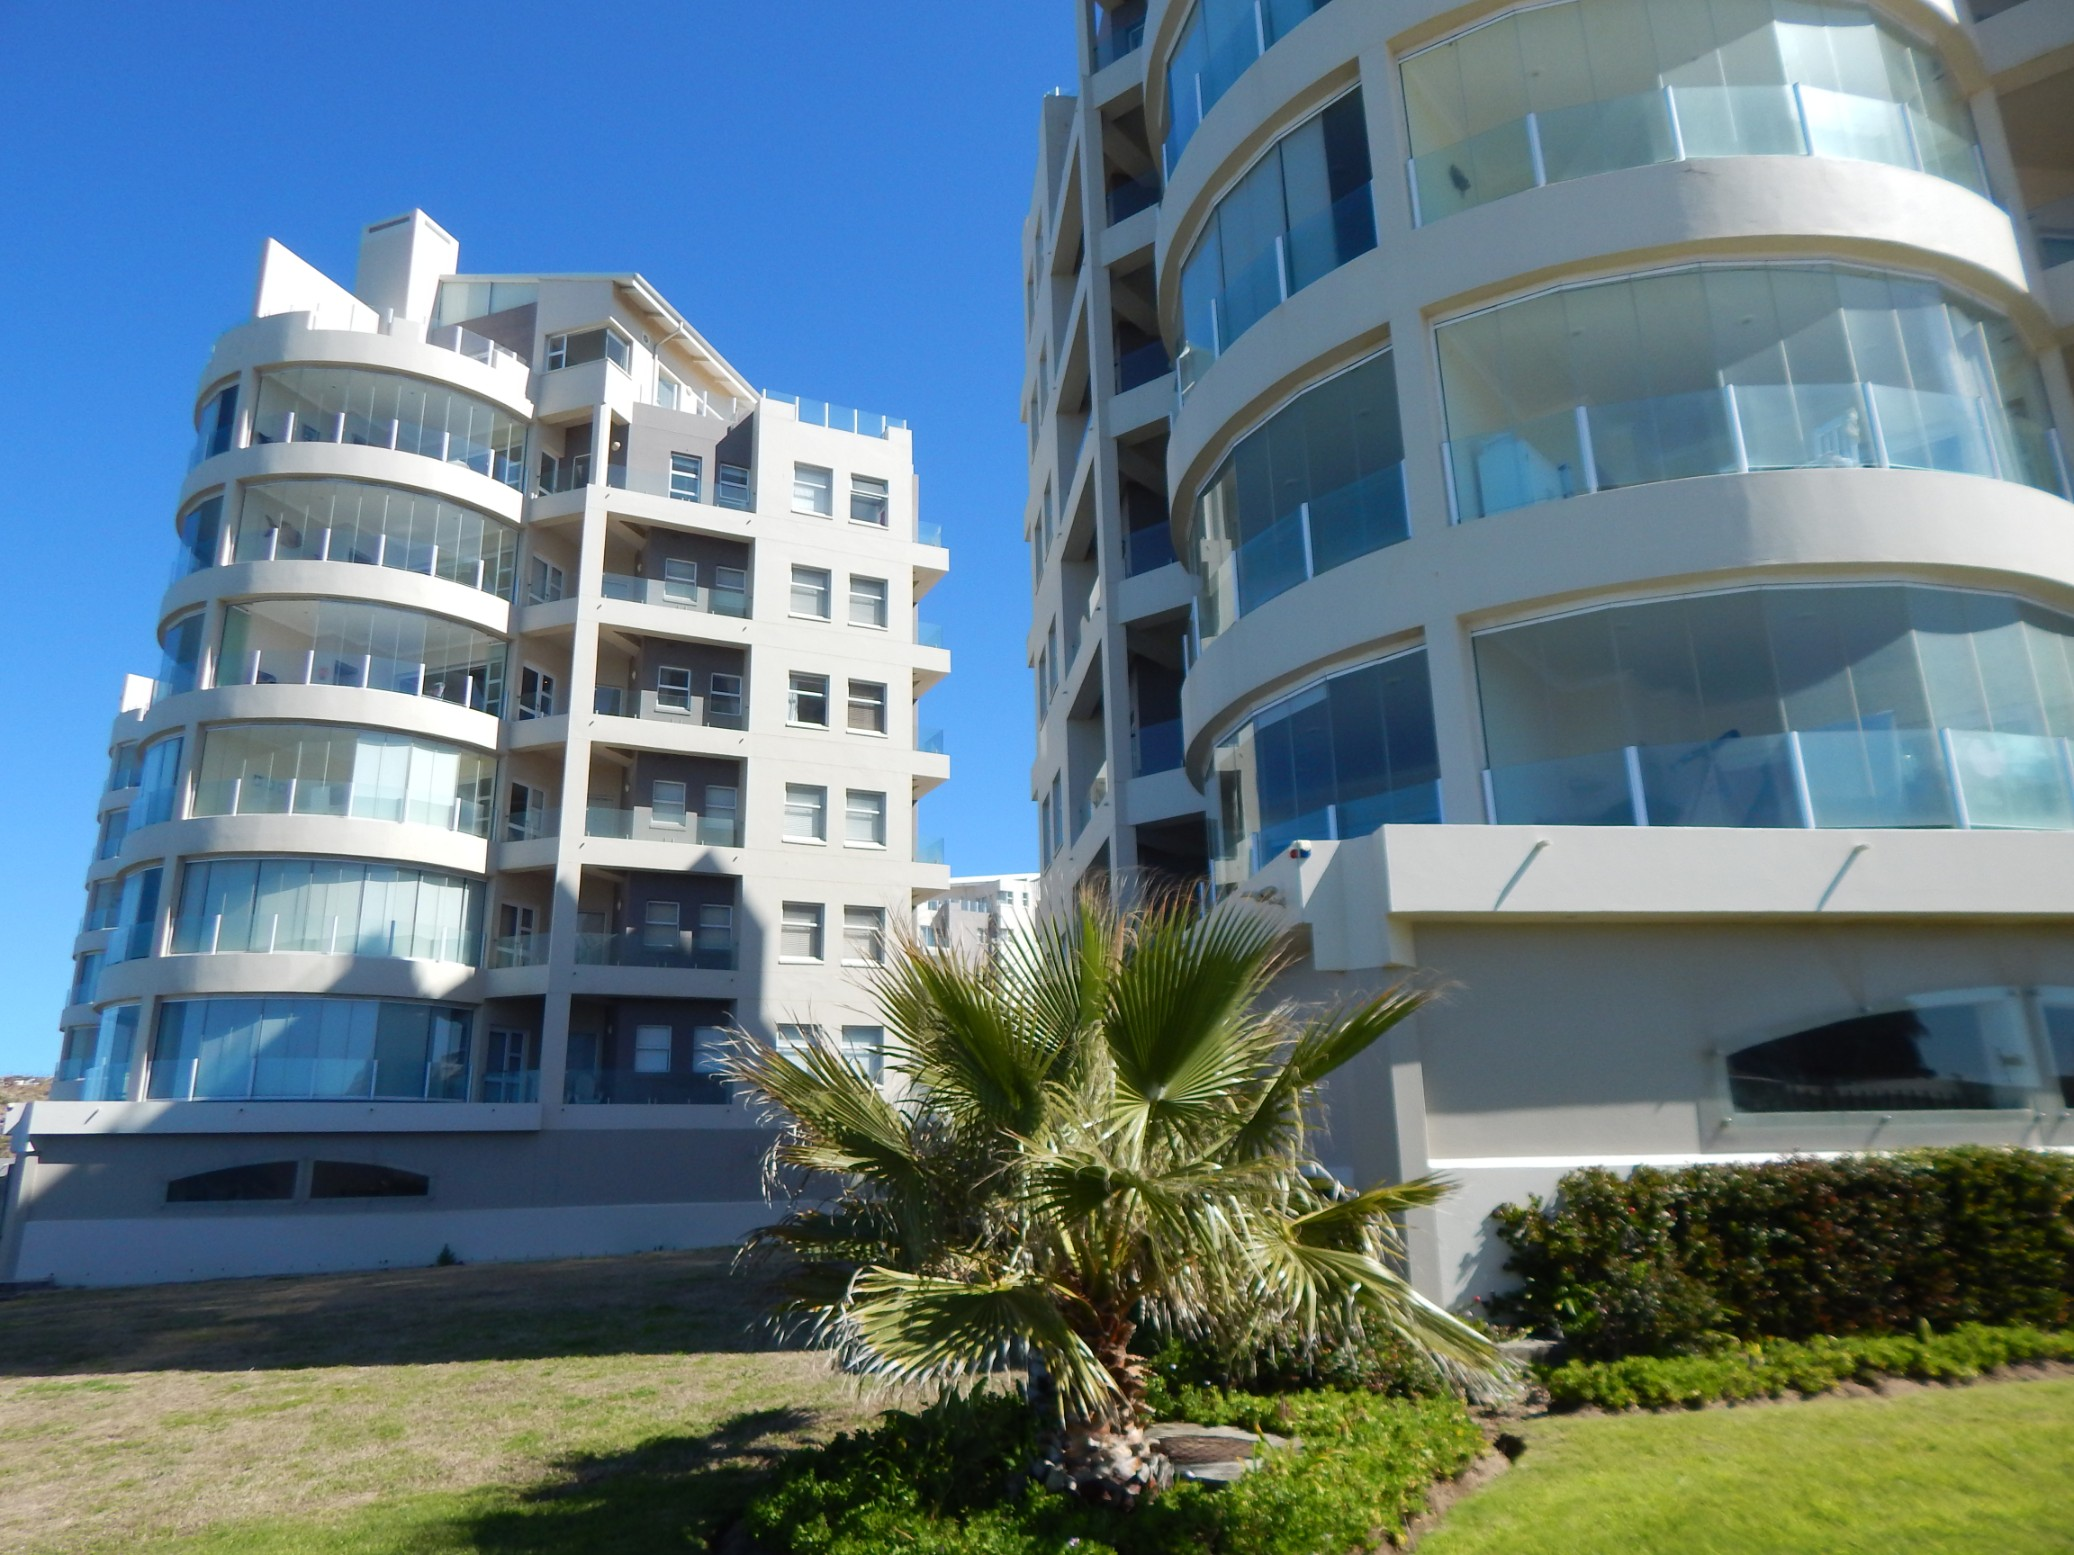 3 Bedroom Apartment for sale in Diaz Beach ENT0069020 : photo#2